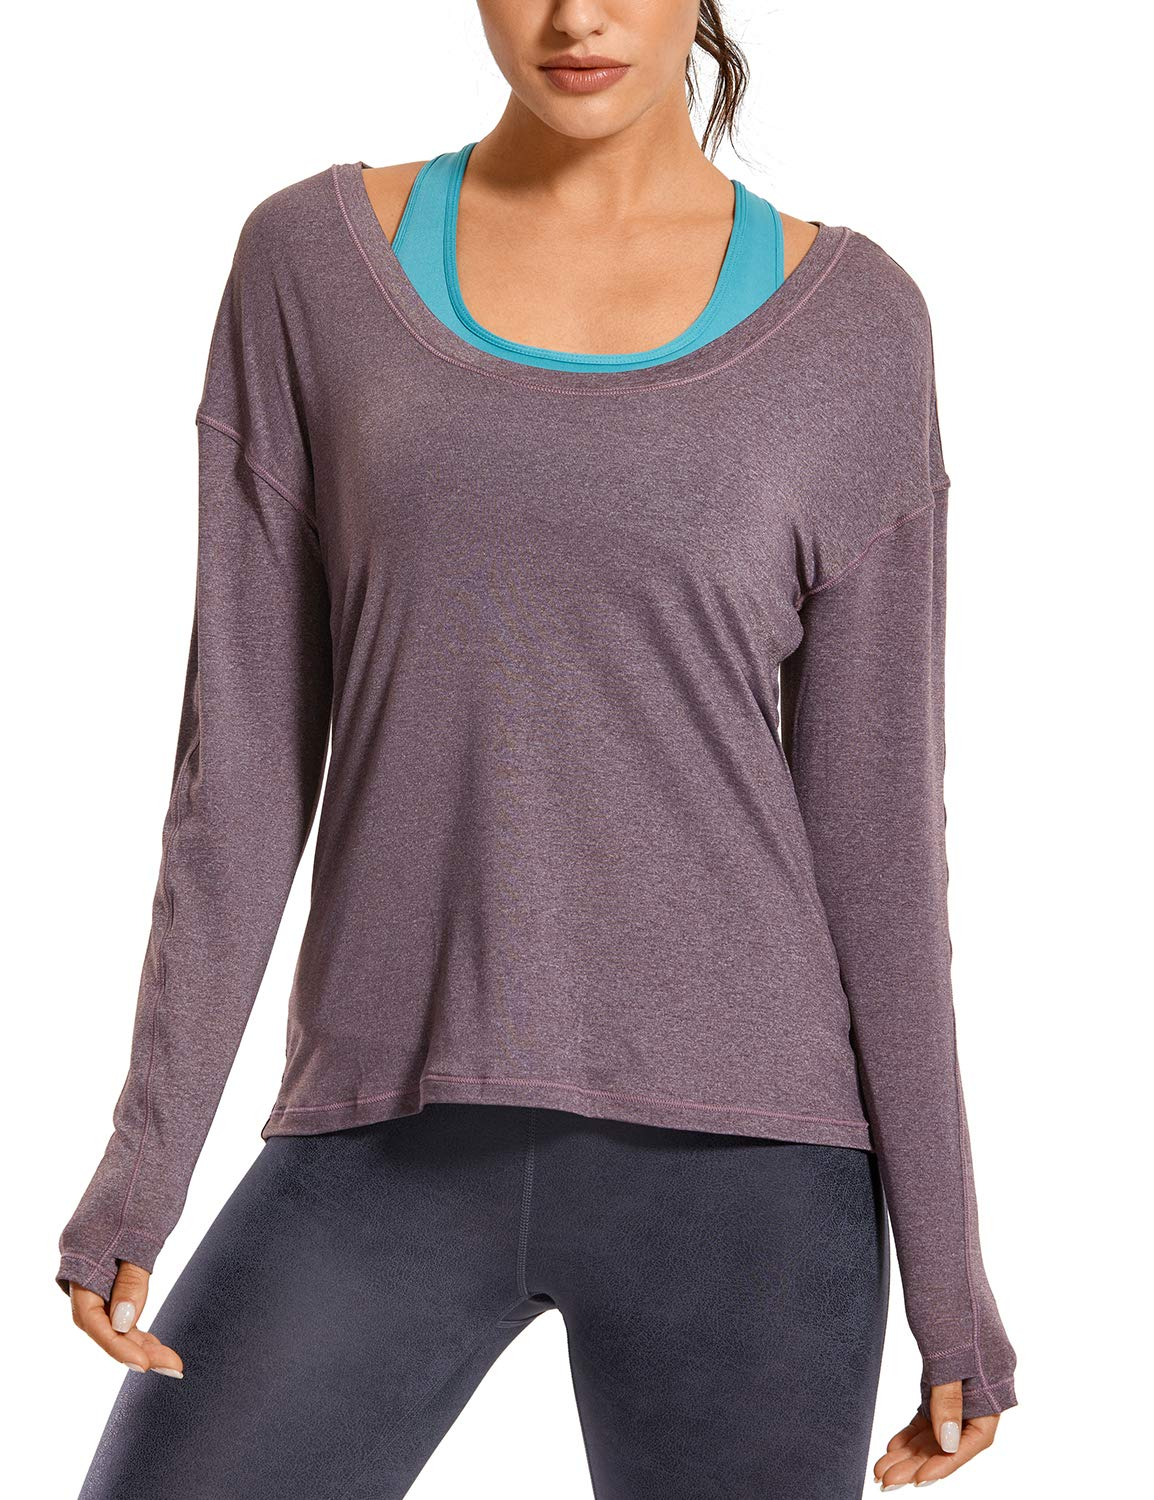 CRZ YOGA Women's Lightweight Heather Workout Tops Long Sleeve Tees Yoga Shirts Loose Fit with Thumbholes